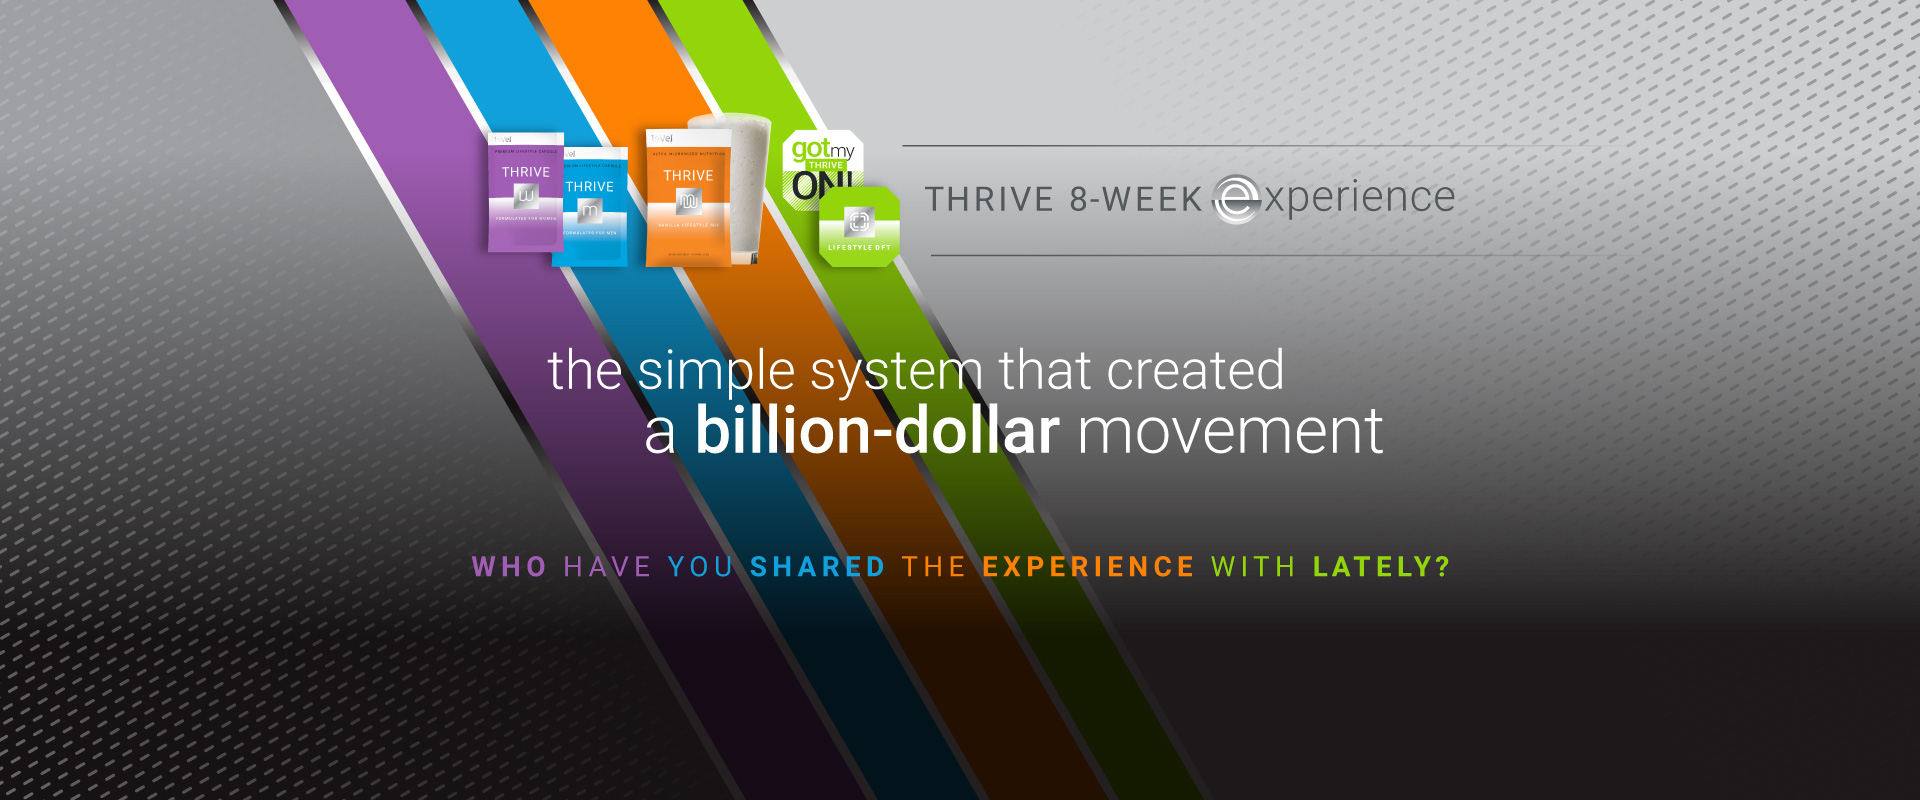 THRIVE Billion-Dollar Movement